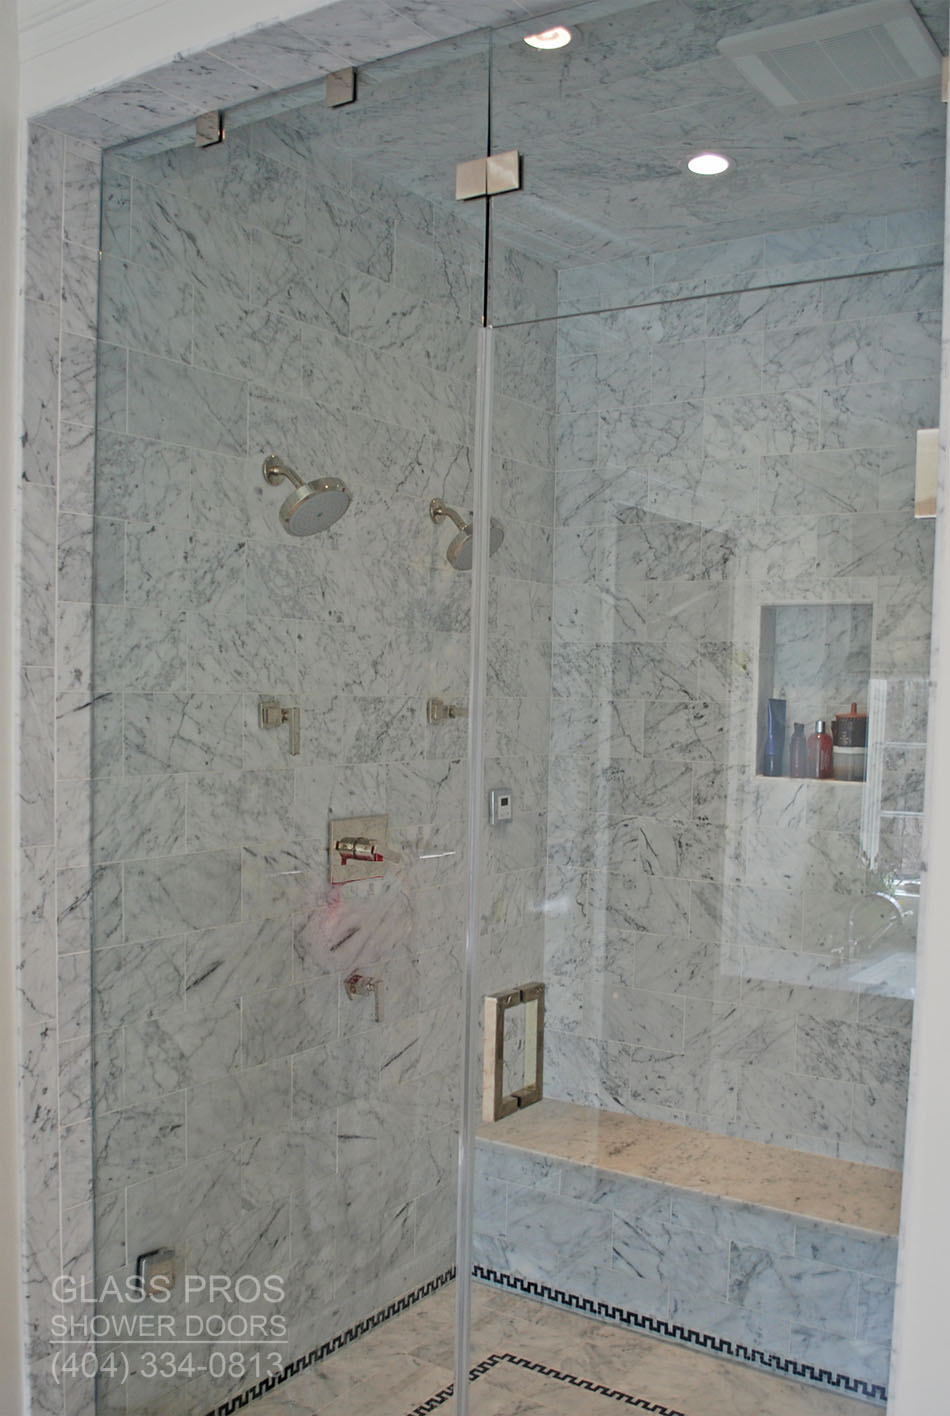 Beautiful glass shower enclosure New - Best of frameless glass shower doors cost Picture